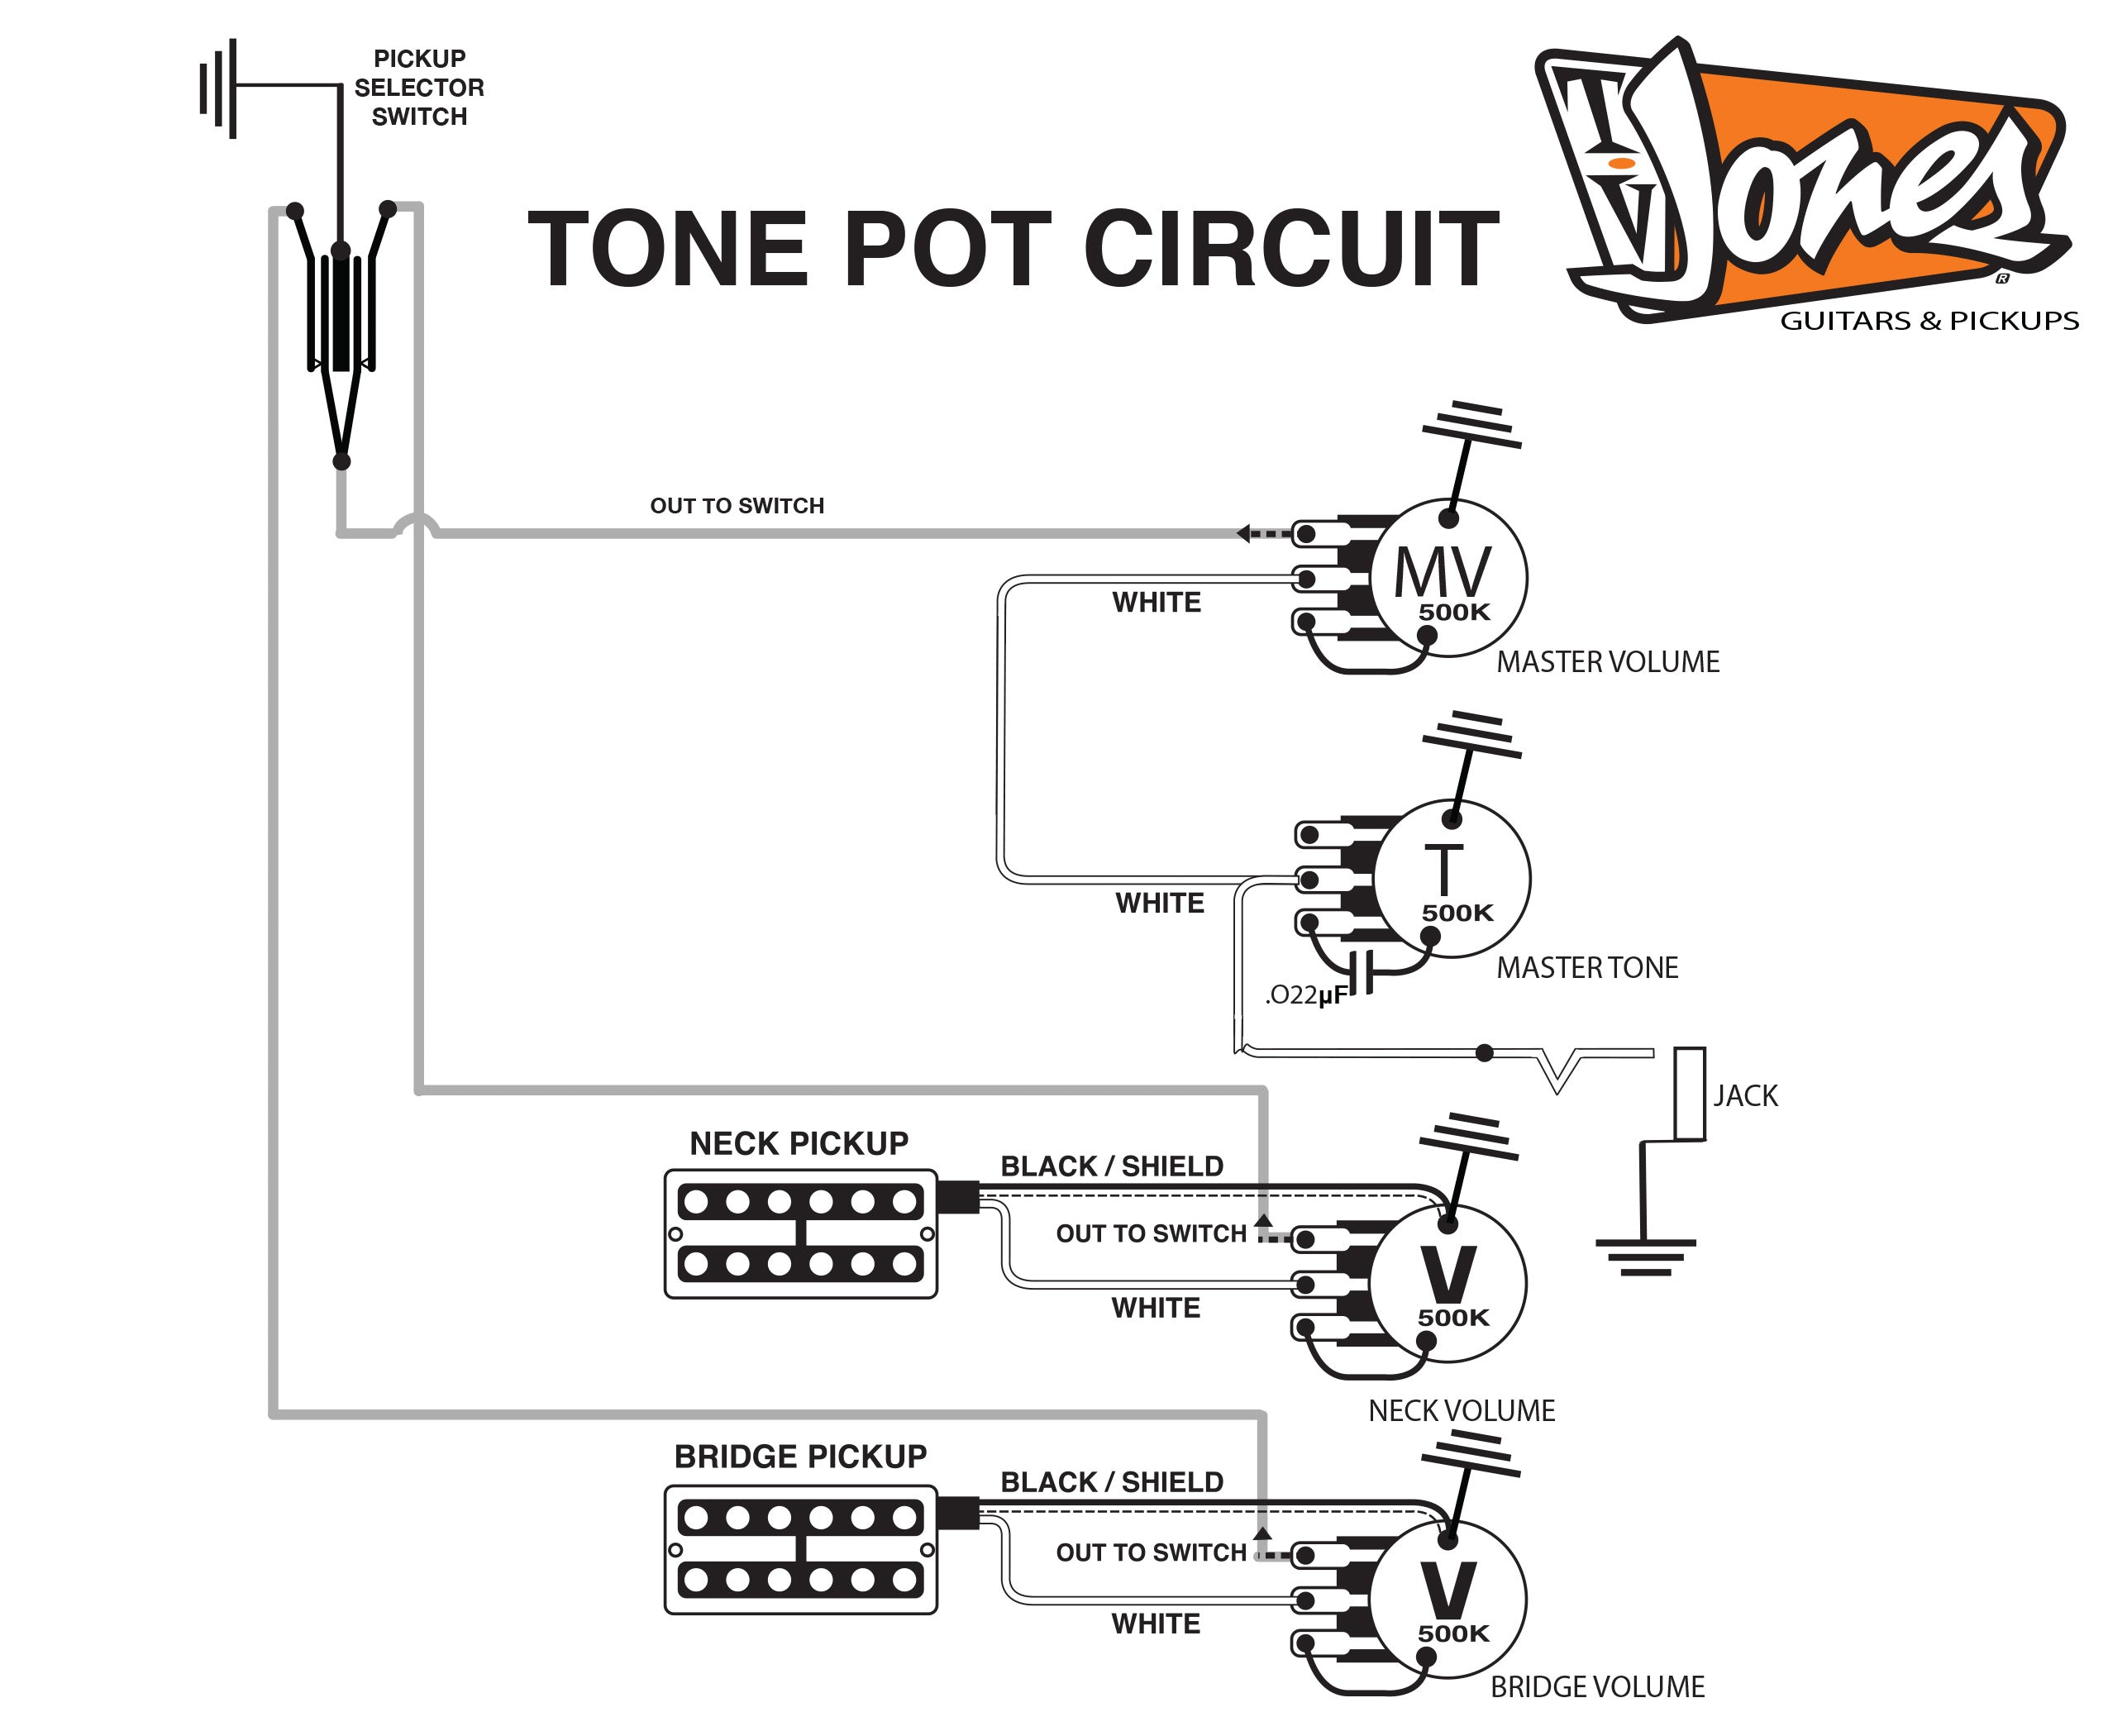 Tom Anderson Guitar Wiring Diagram Library. Tv Jones Product Dimensions Rh Tvjones Telecaster Wiring Diagram Eric Clapton Strat. Wiring. Clapton Wiring Diagram At Scoala.co